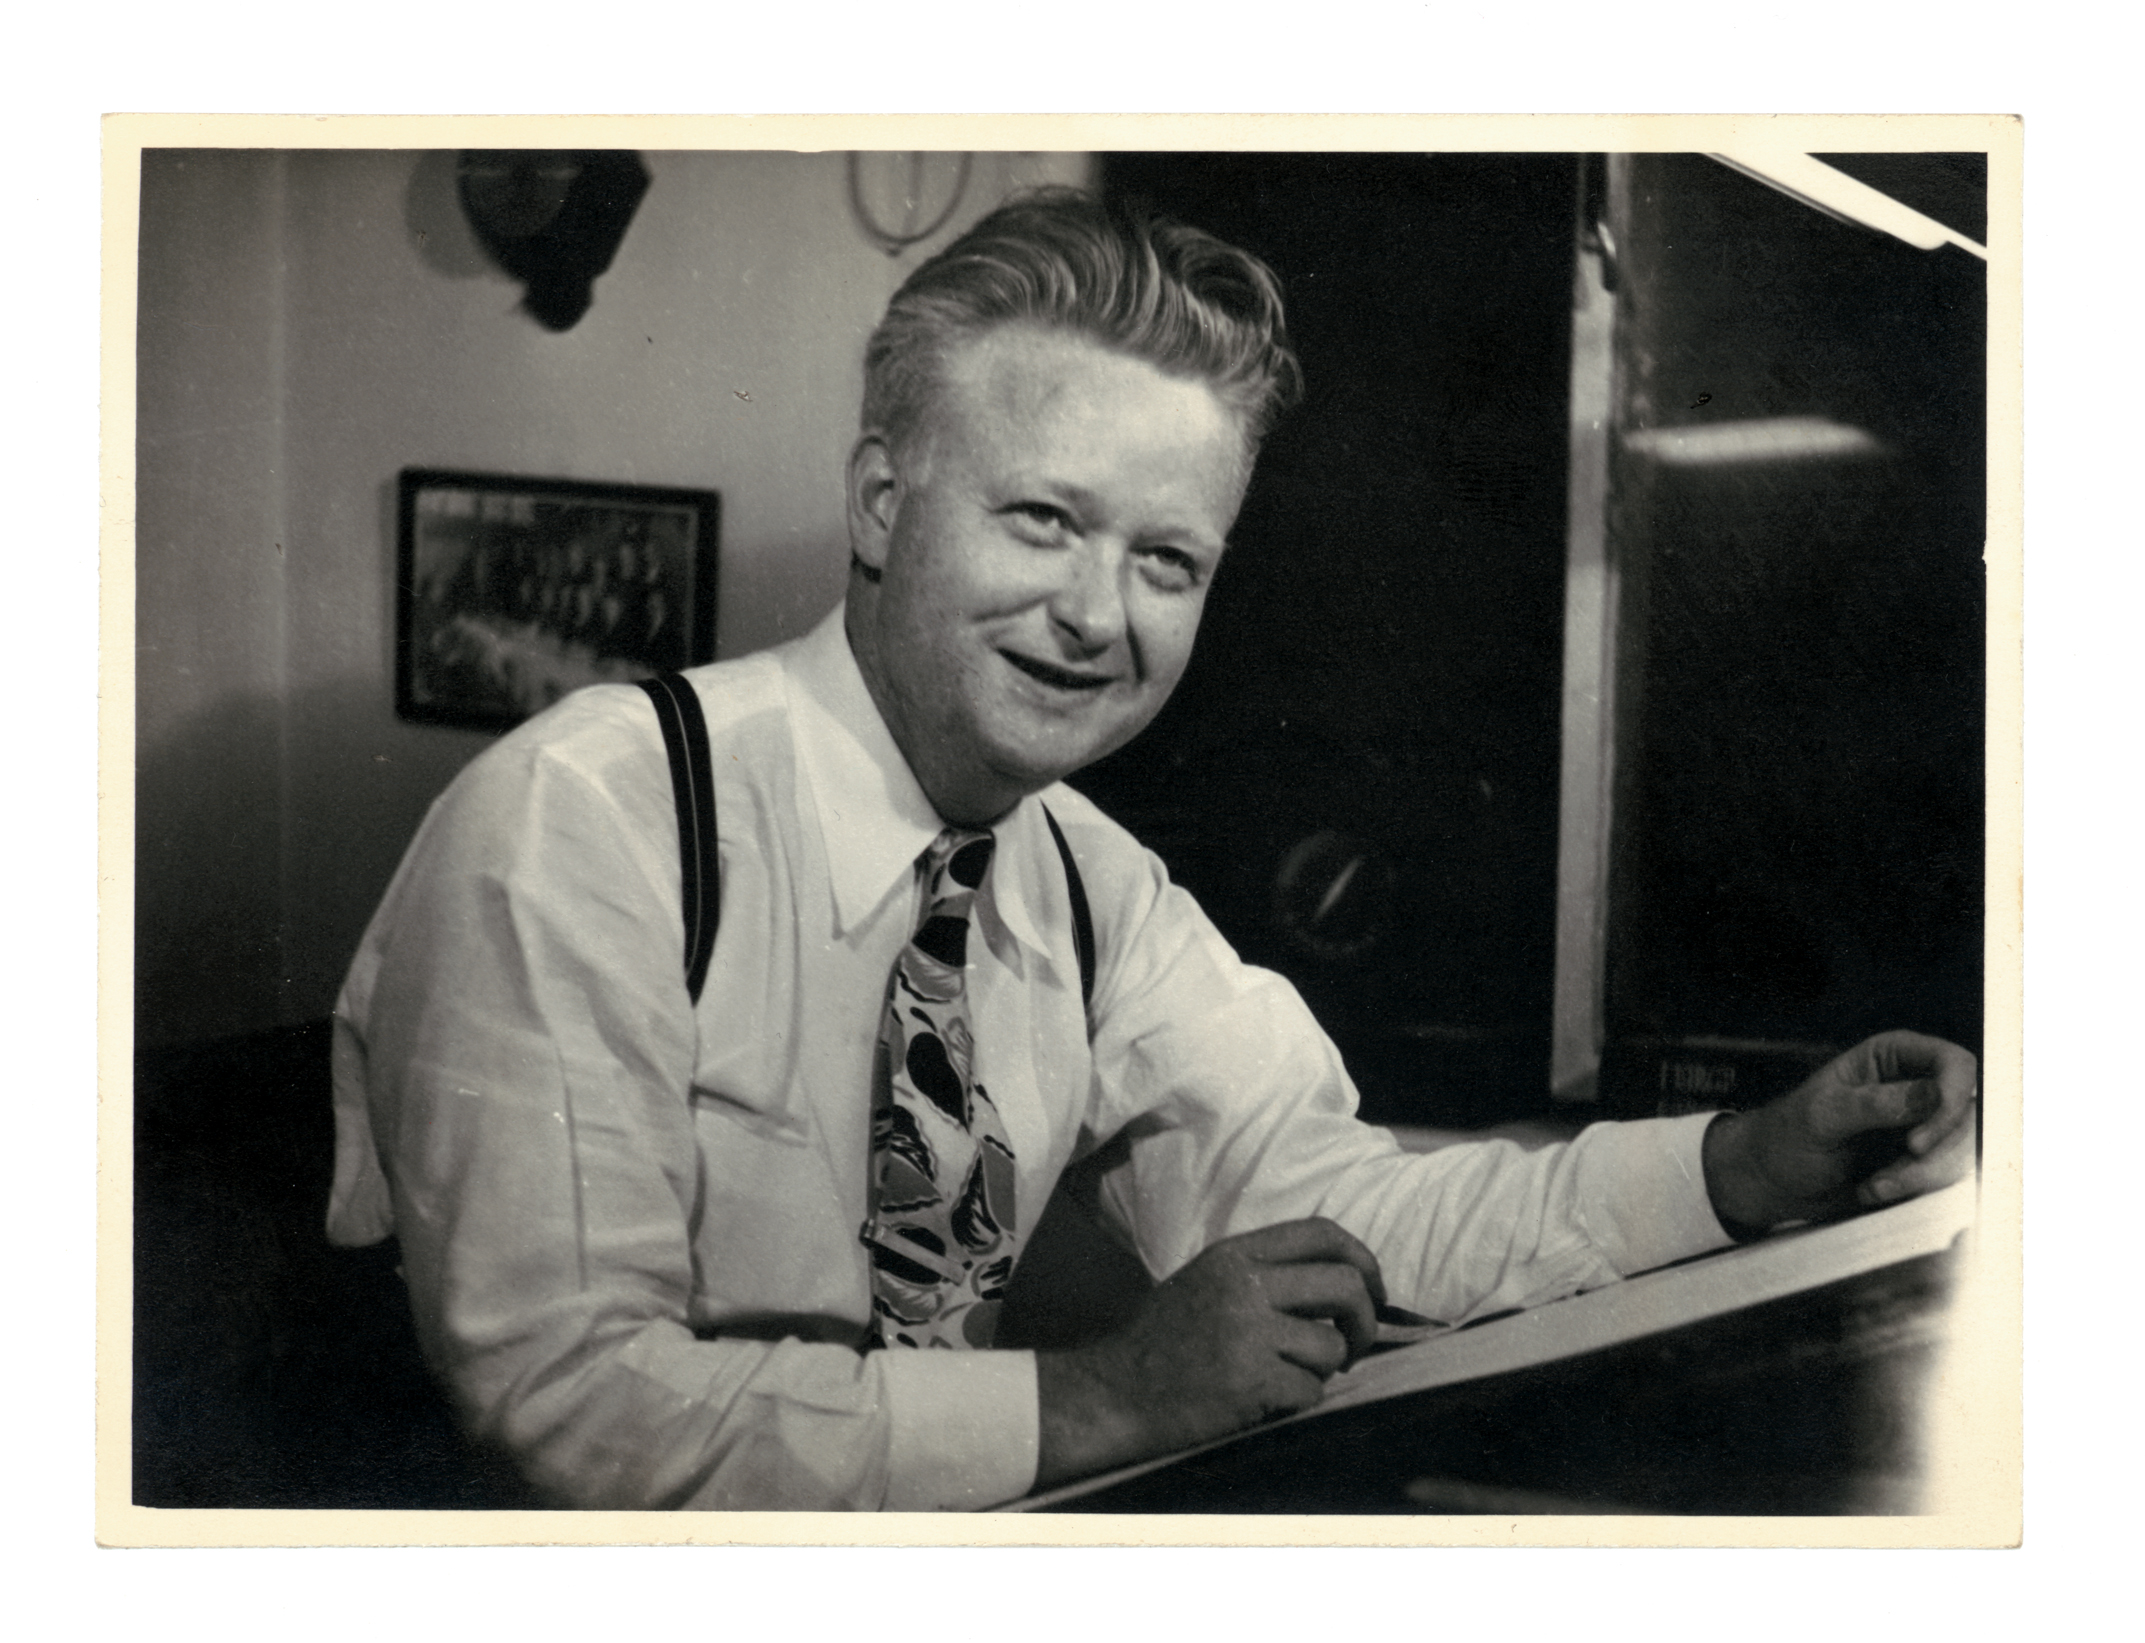 Ernie Bushmiller in the 1940s (click to enlarge)